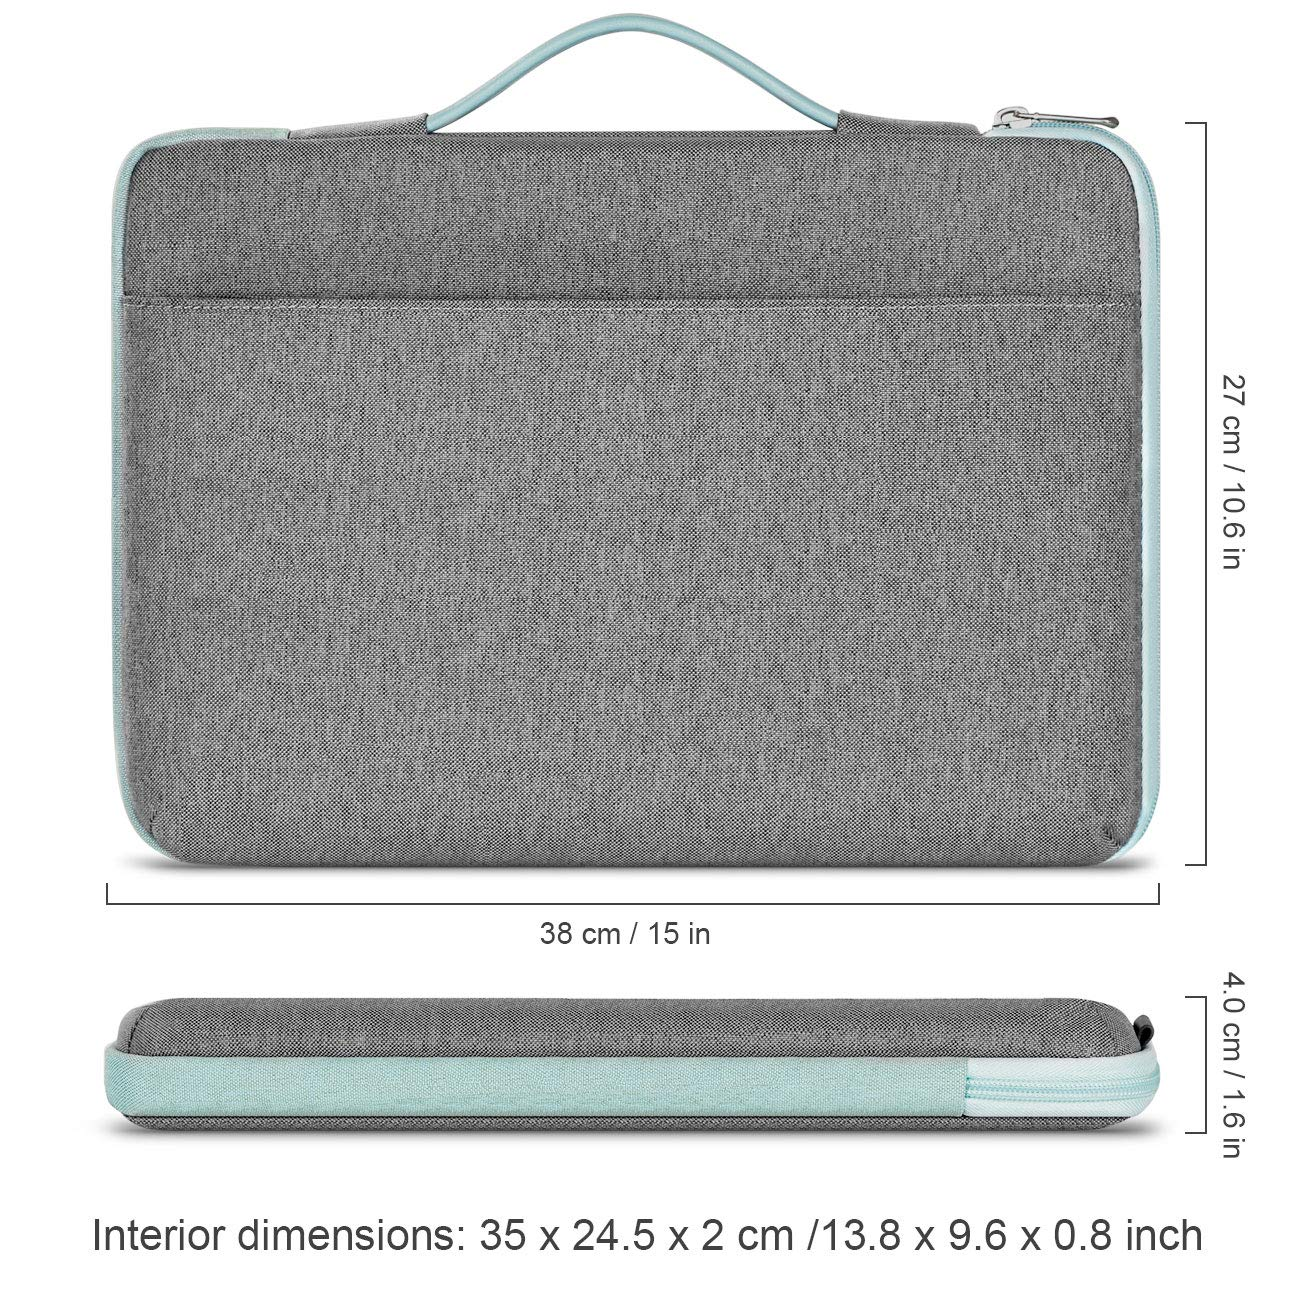 with Extra Storage Space Notebooks Ultrabooks Netbooks Inateck Shockproof Laptop Sleeve Case Briefcase Spill Resistant for 13-13.3 Inch Laptops